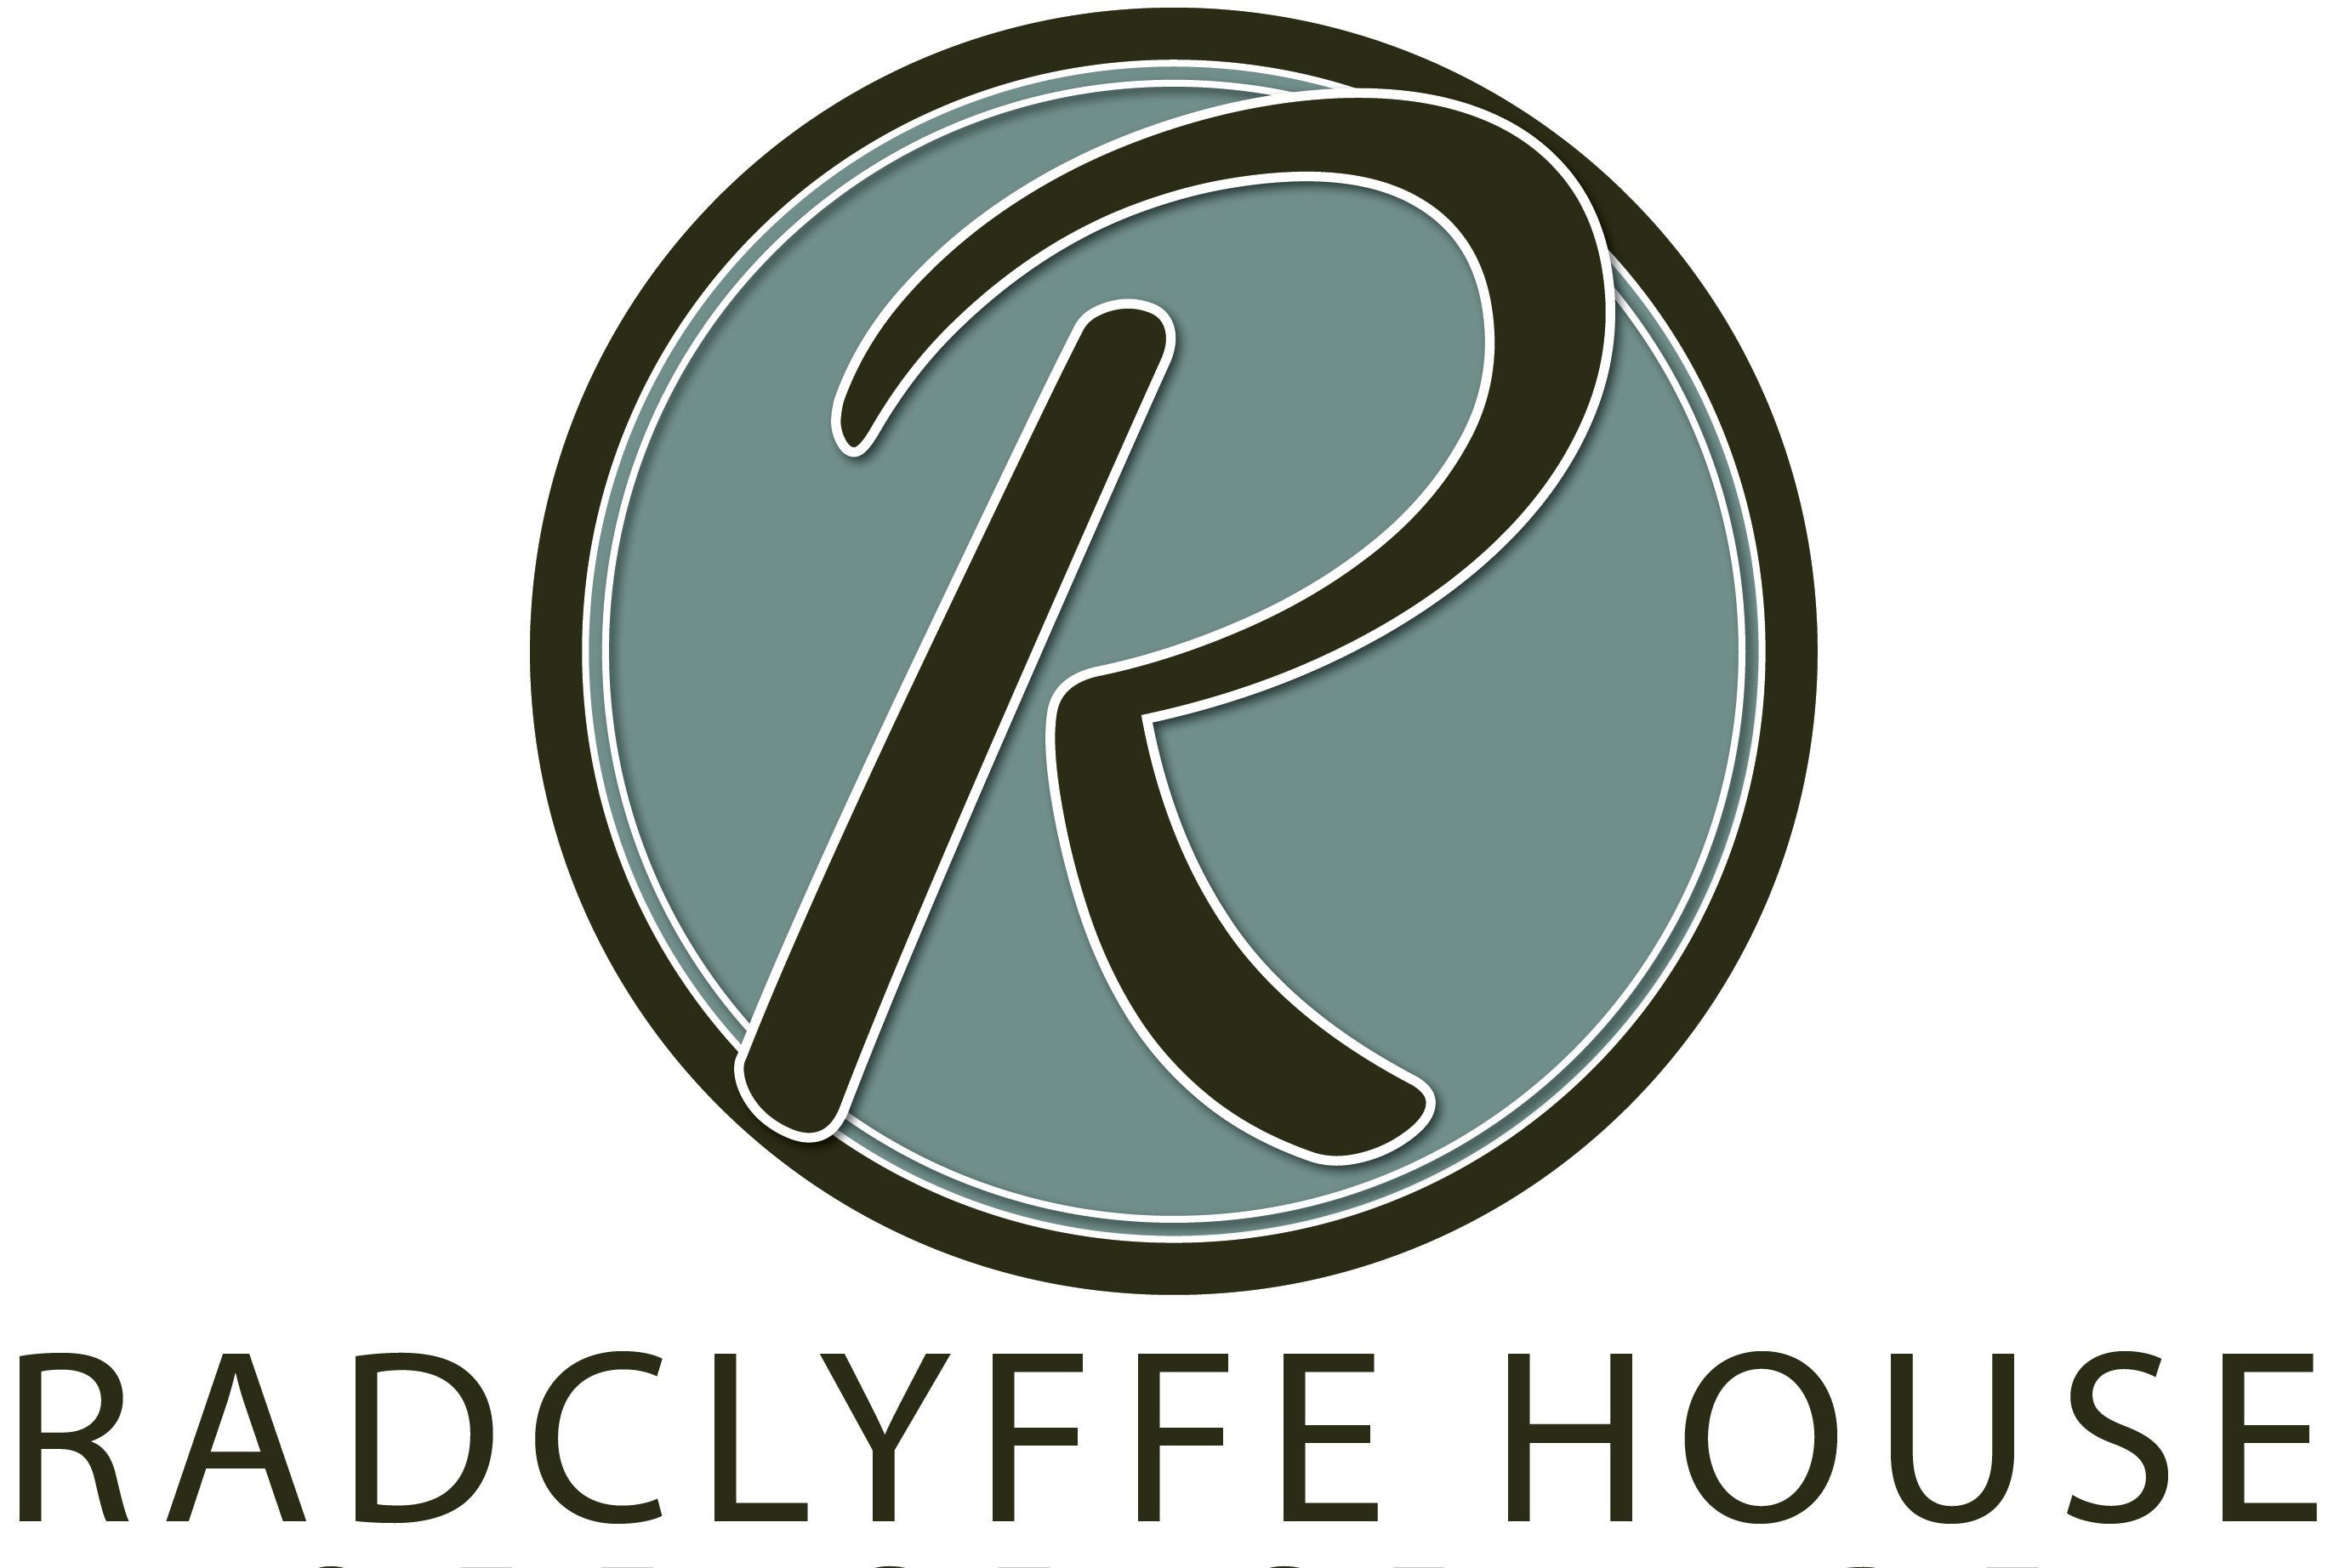 Radclyffe House Office Centre Edgbaston